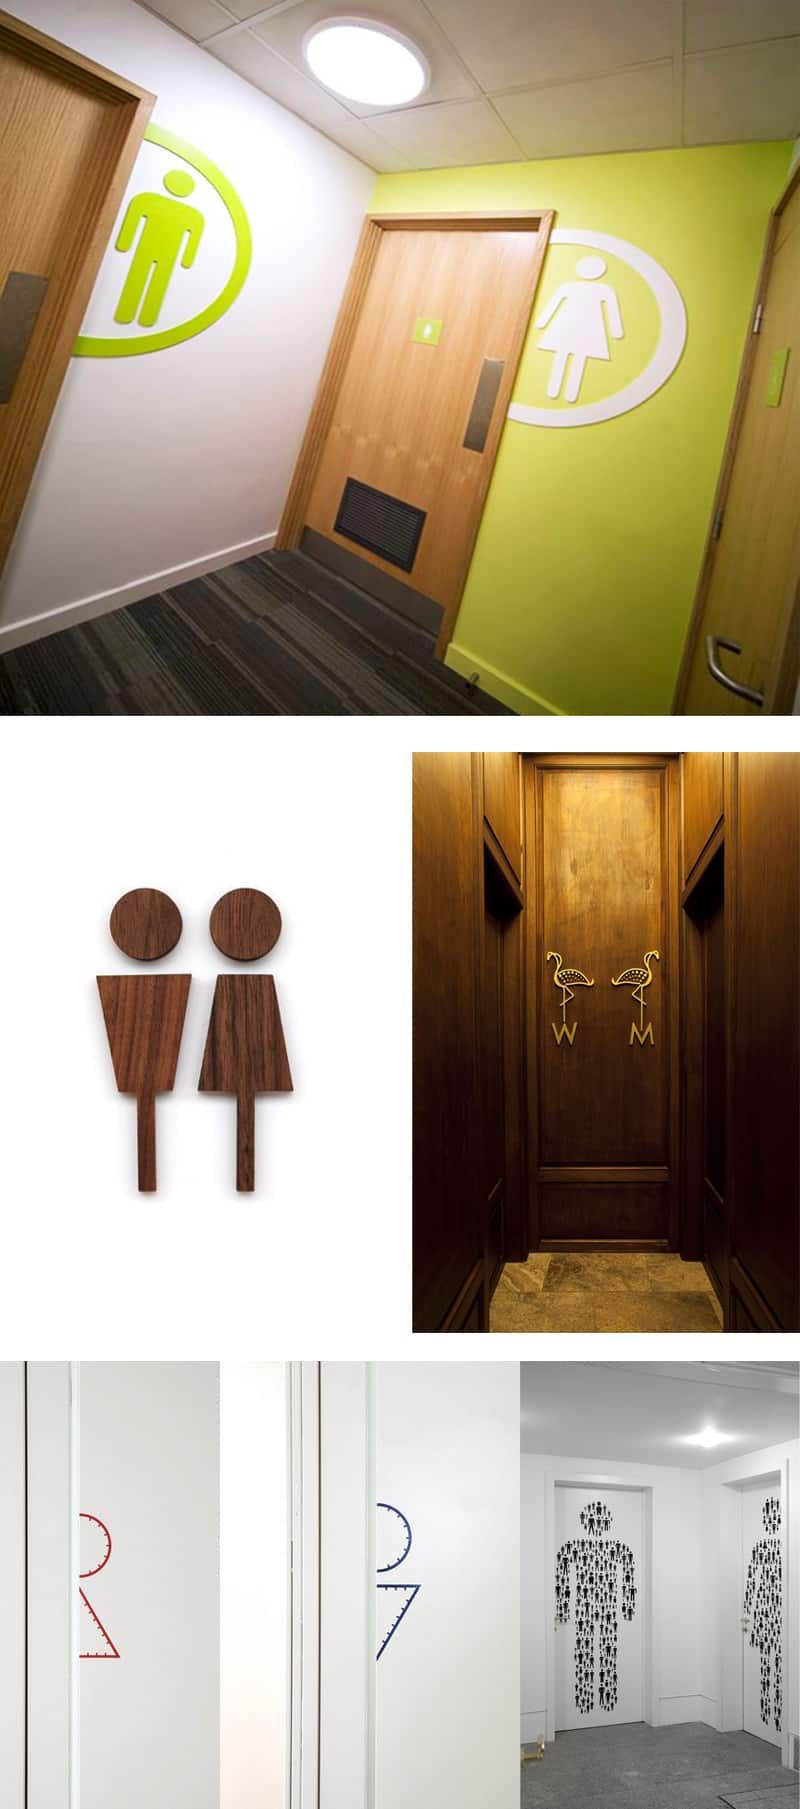 22 Creative And Funny Toilet Signs With Images Funny Toilet